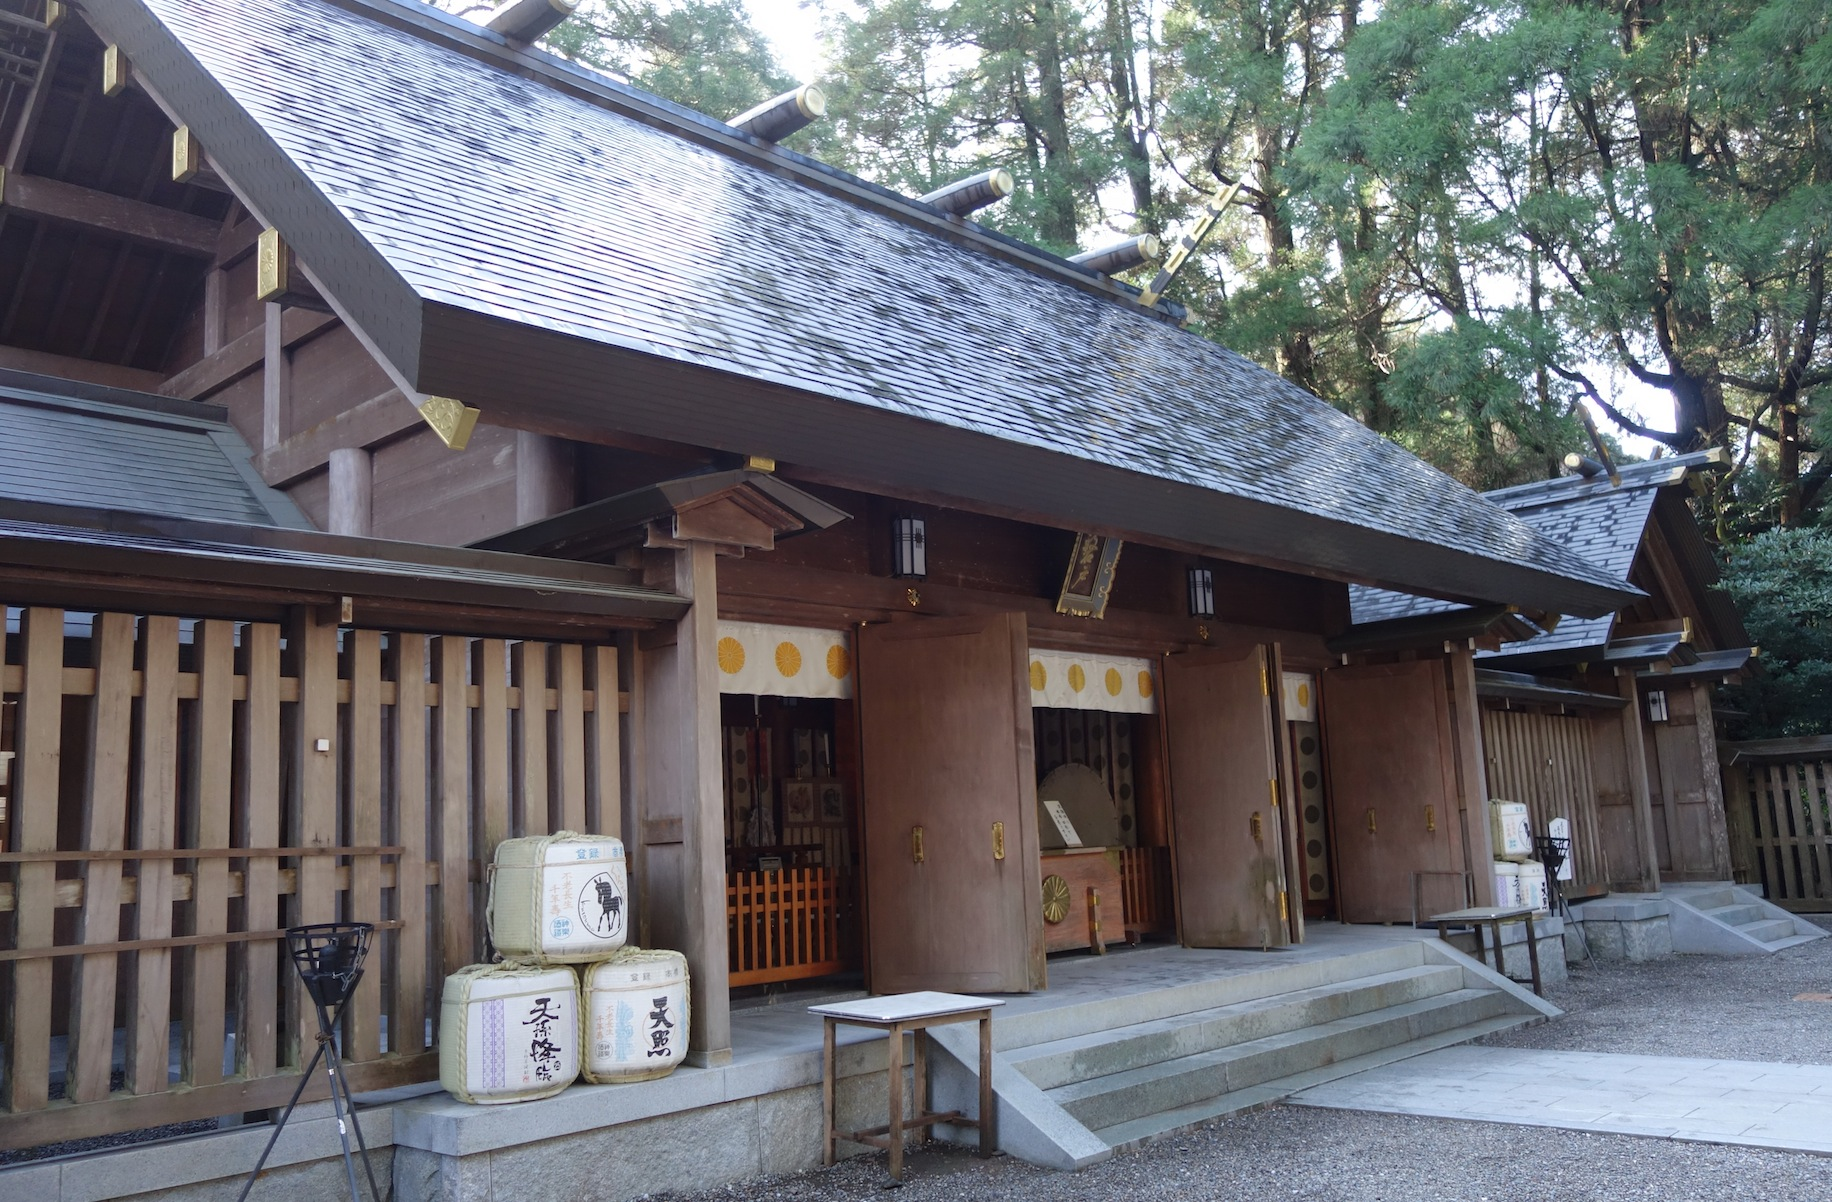 Amano Iwato Shrine